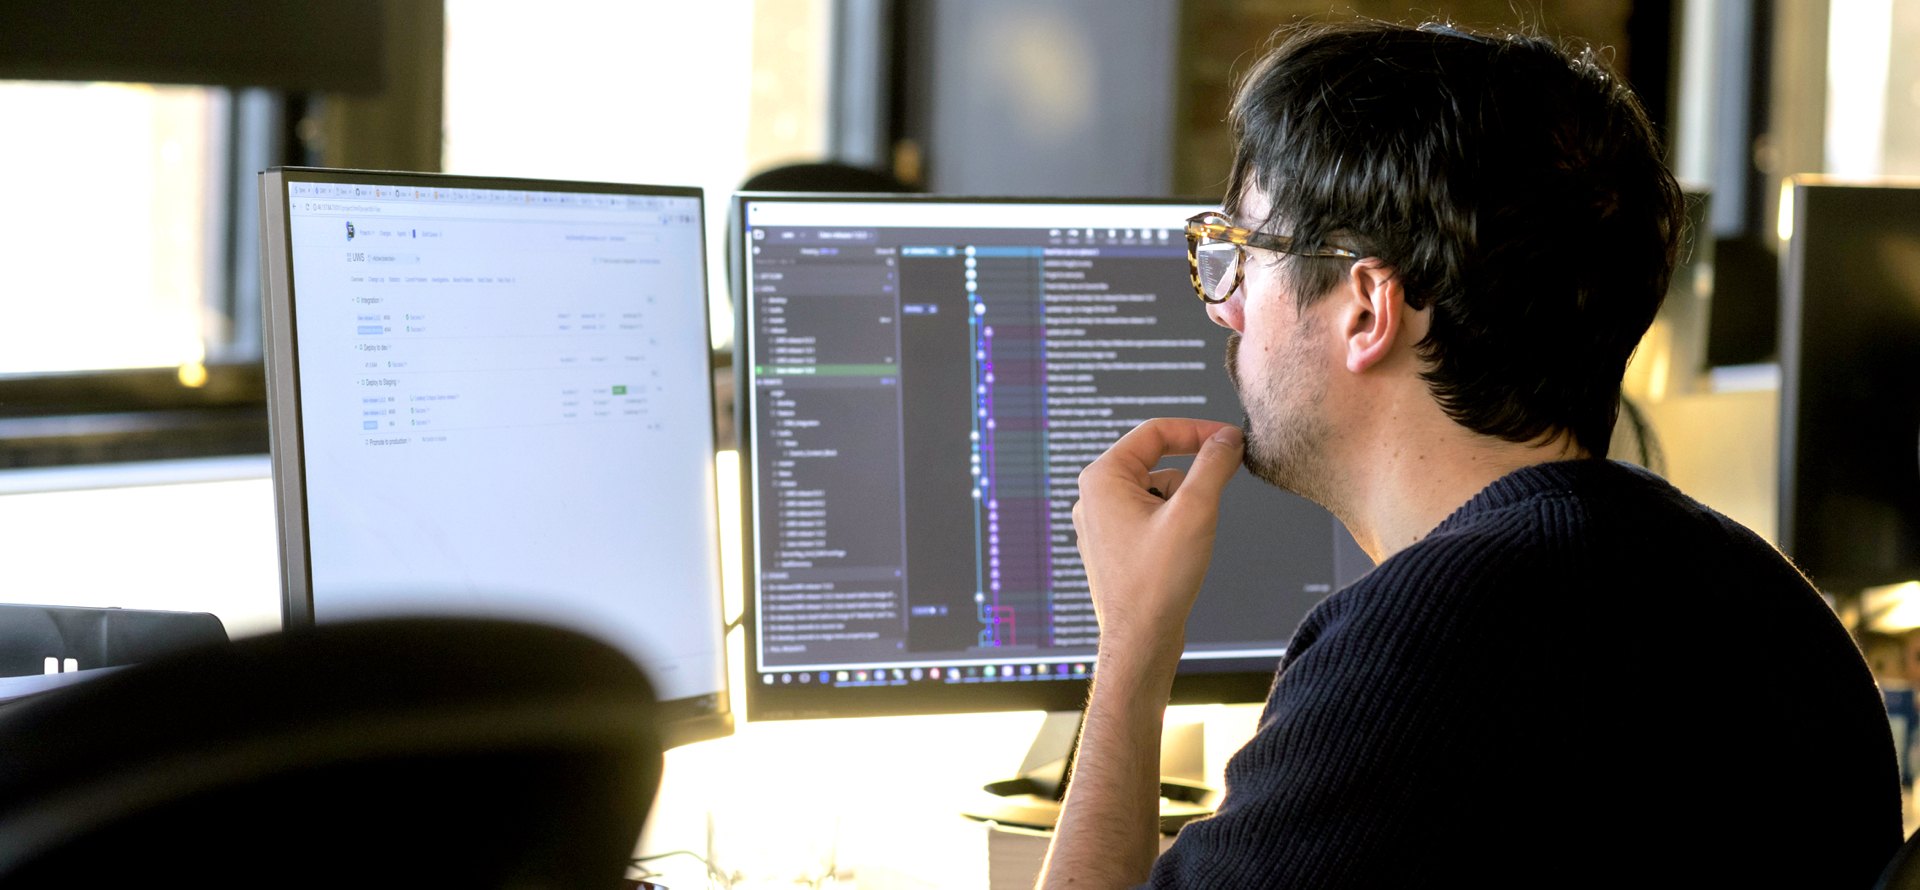 image of a man looking at code on a computer